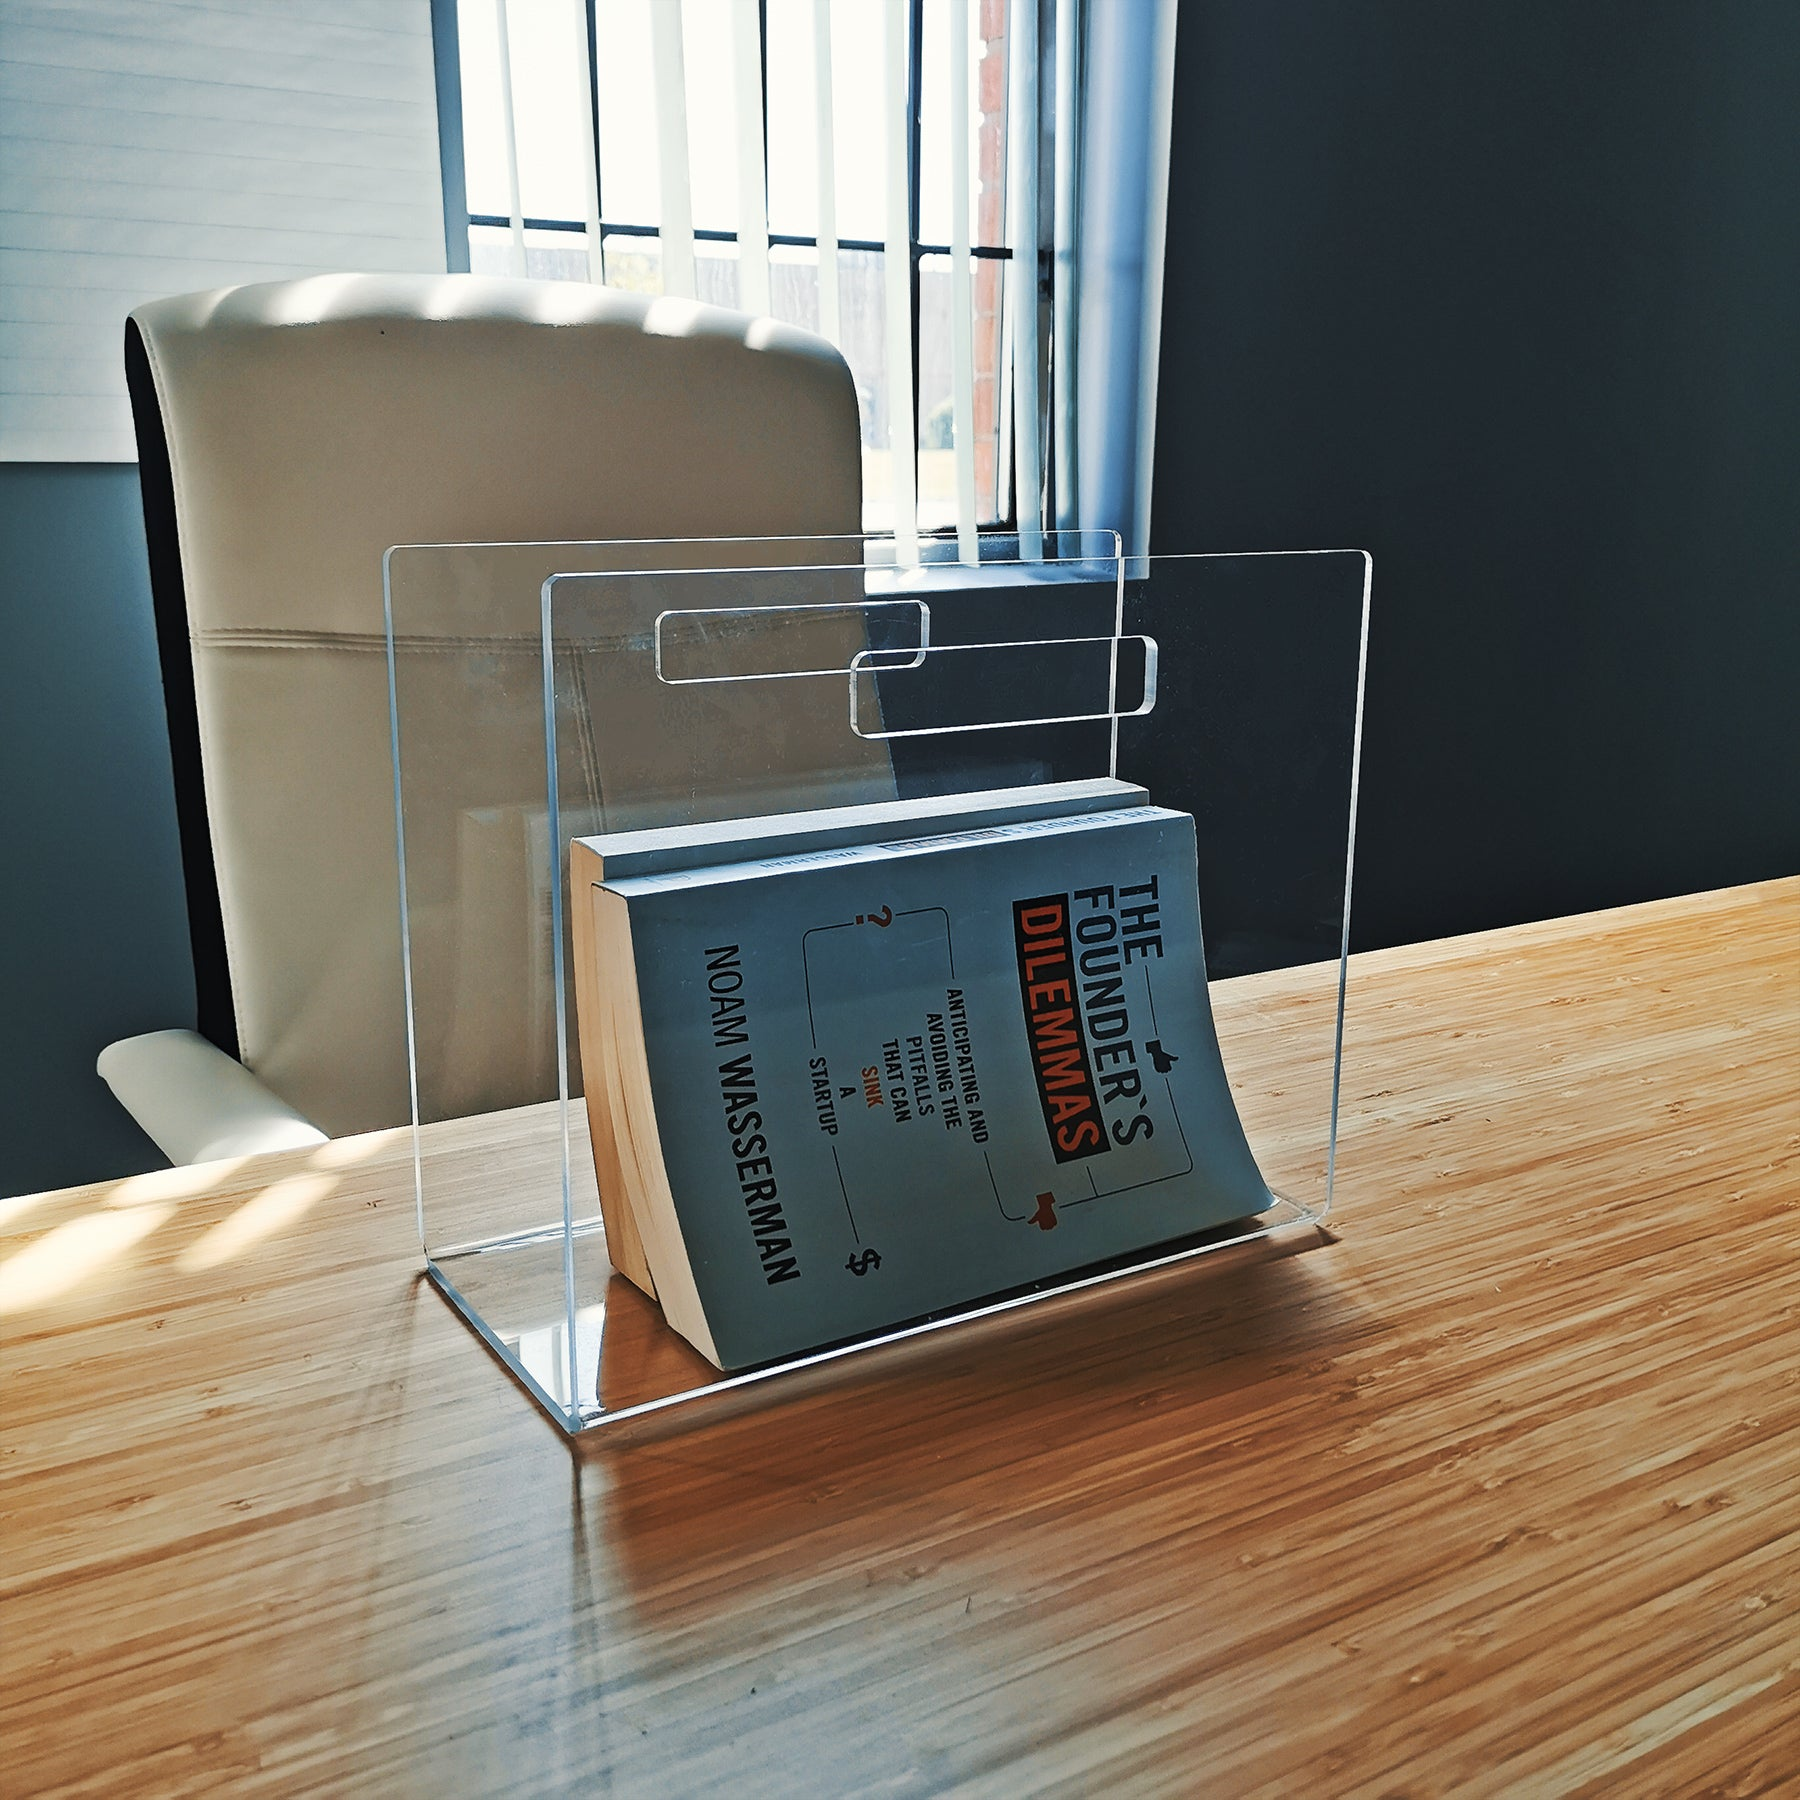 Plastic Magazine Holder - Plastic Work Displays